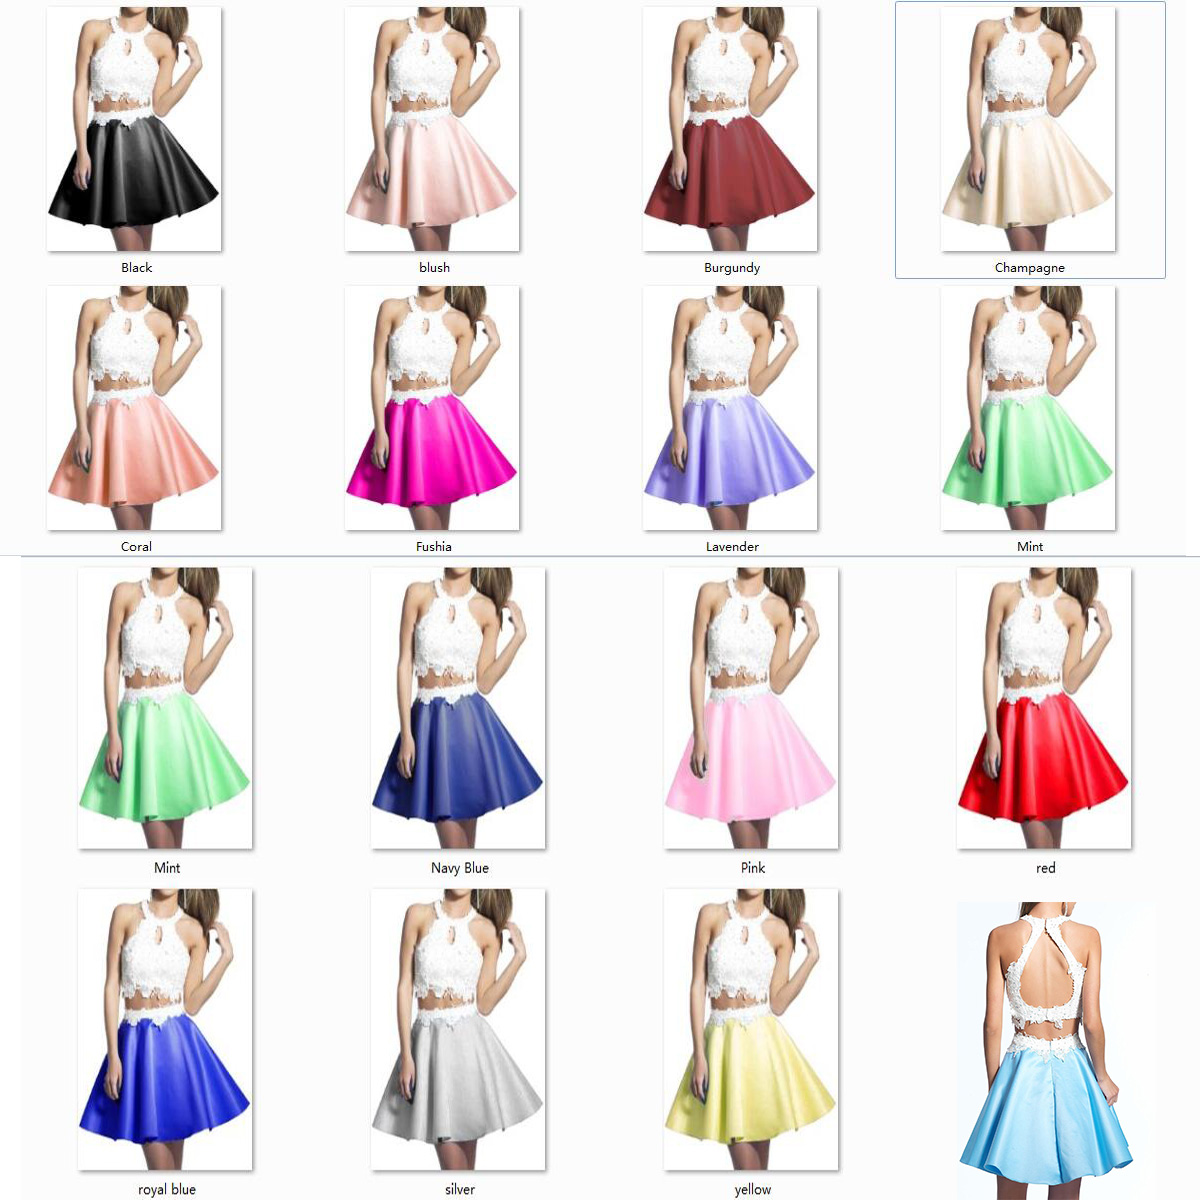 b0c790a540b LoliPromDress Free Shipping Two Piece Short Prom Dress Round Neck Lace  Homecoming Dress Cocktail Party Dress on Storenvy